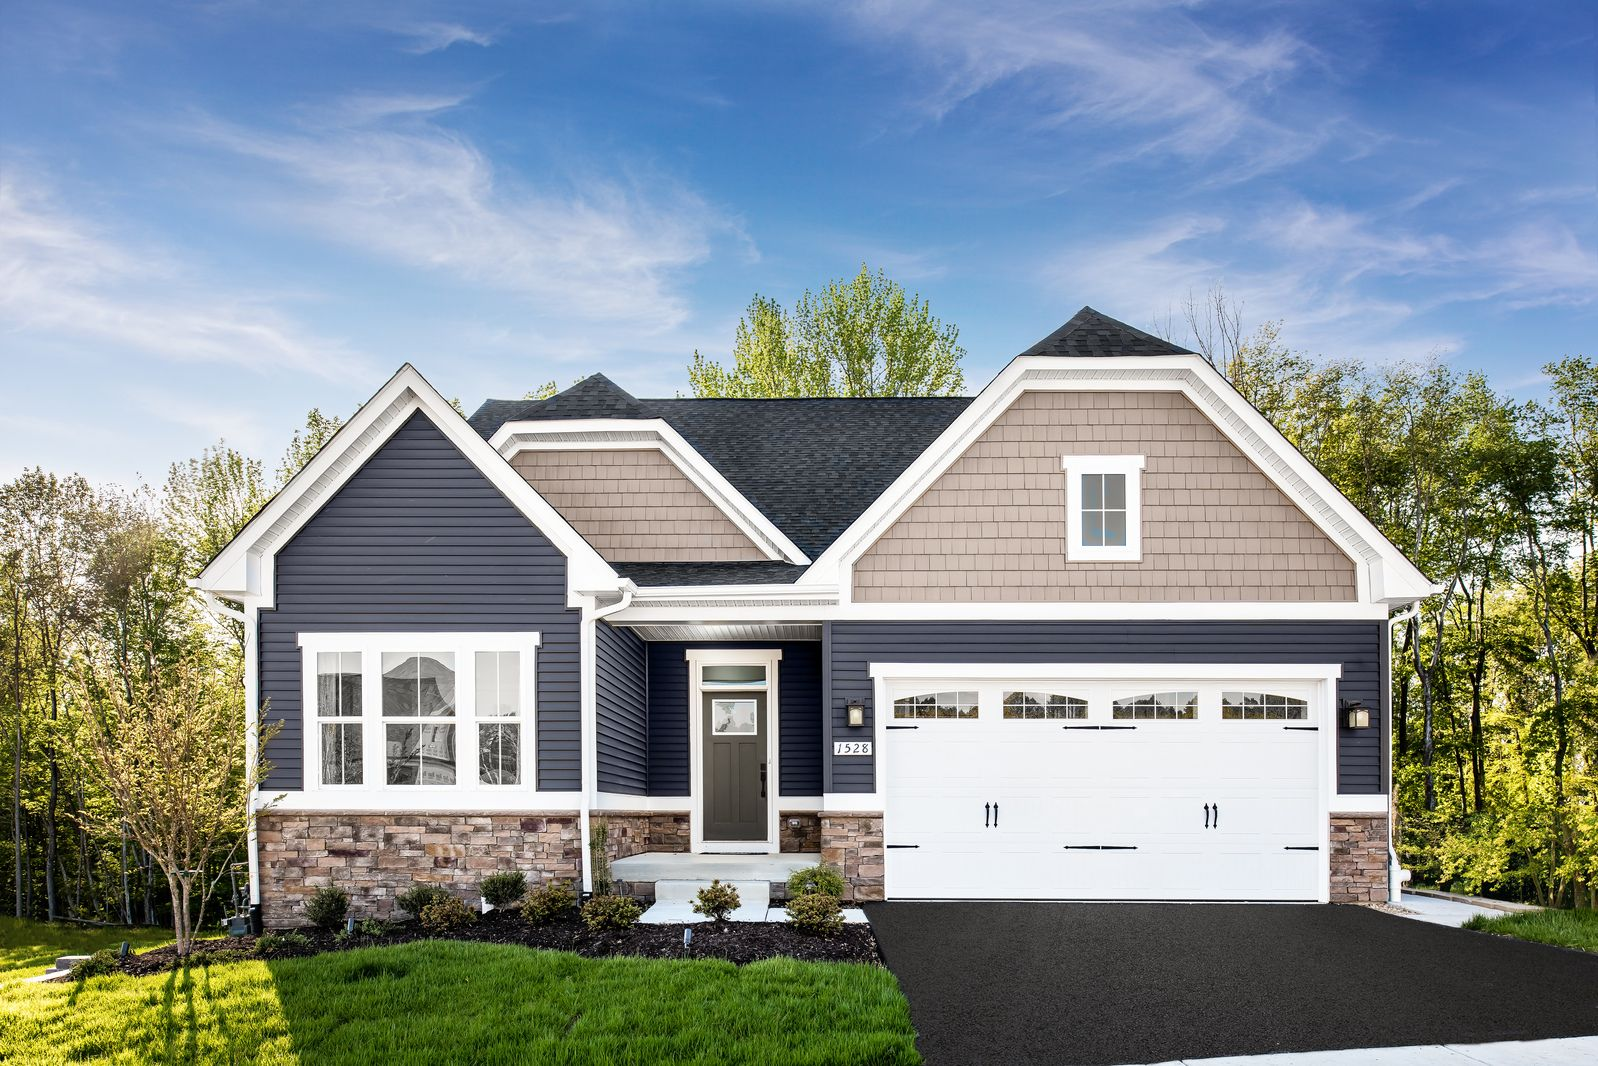 Britlyn is currently sold out:But wait...we'll be back in early 2022! While Britlyn is currently sold out, we will have a new section coming soon.Join the VIPto be notified when new homesites are available!